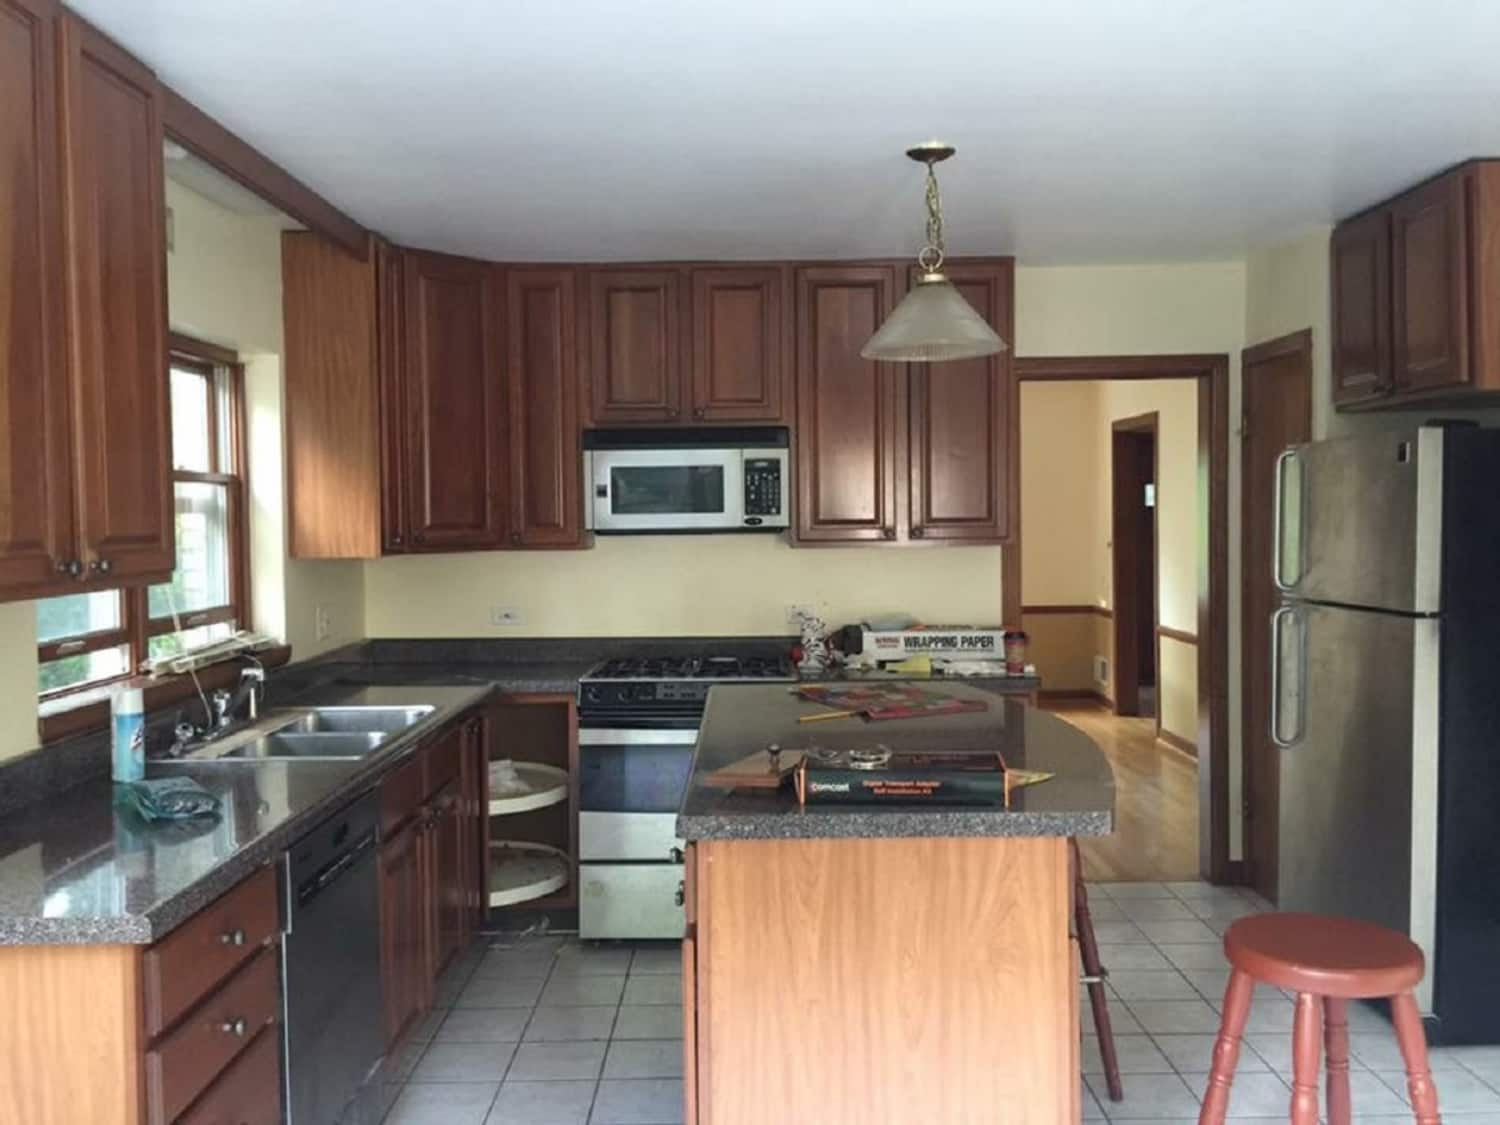 Before & After: From Cherry Wood Beast to Mind-Blowing Beauty